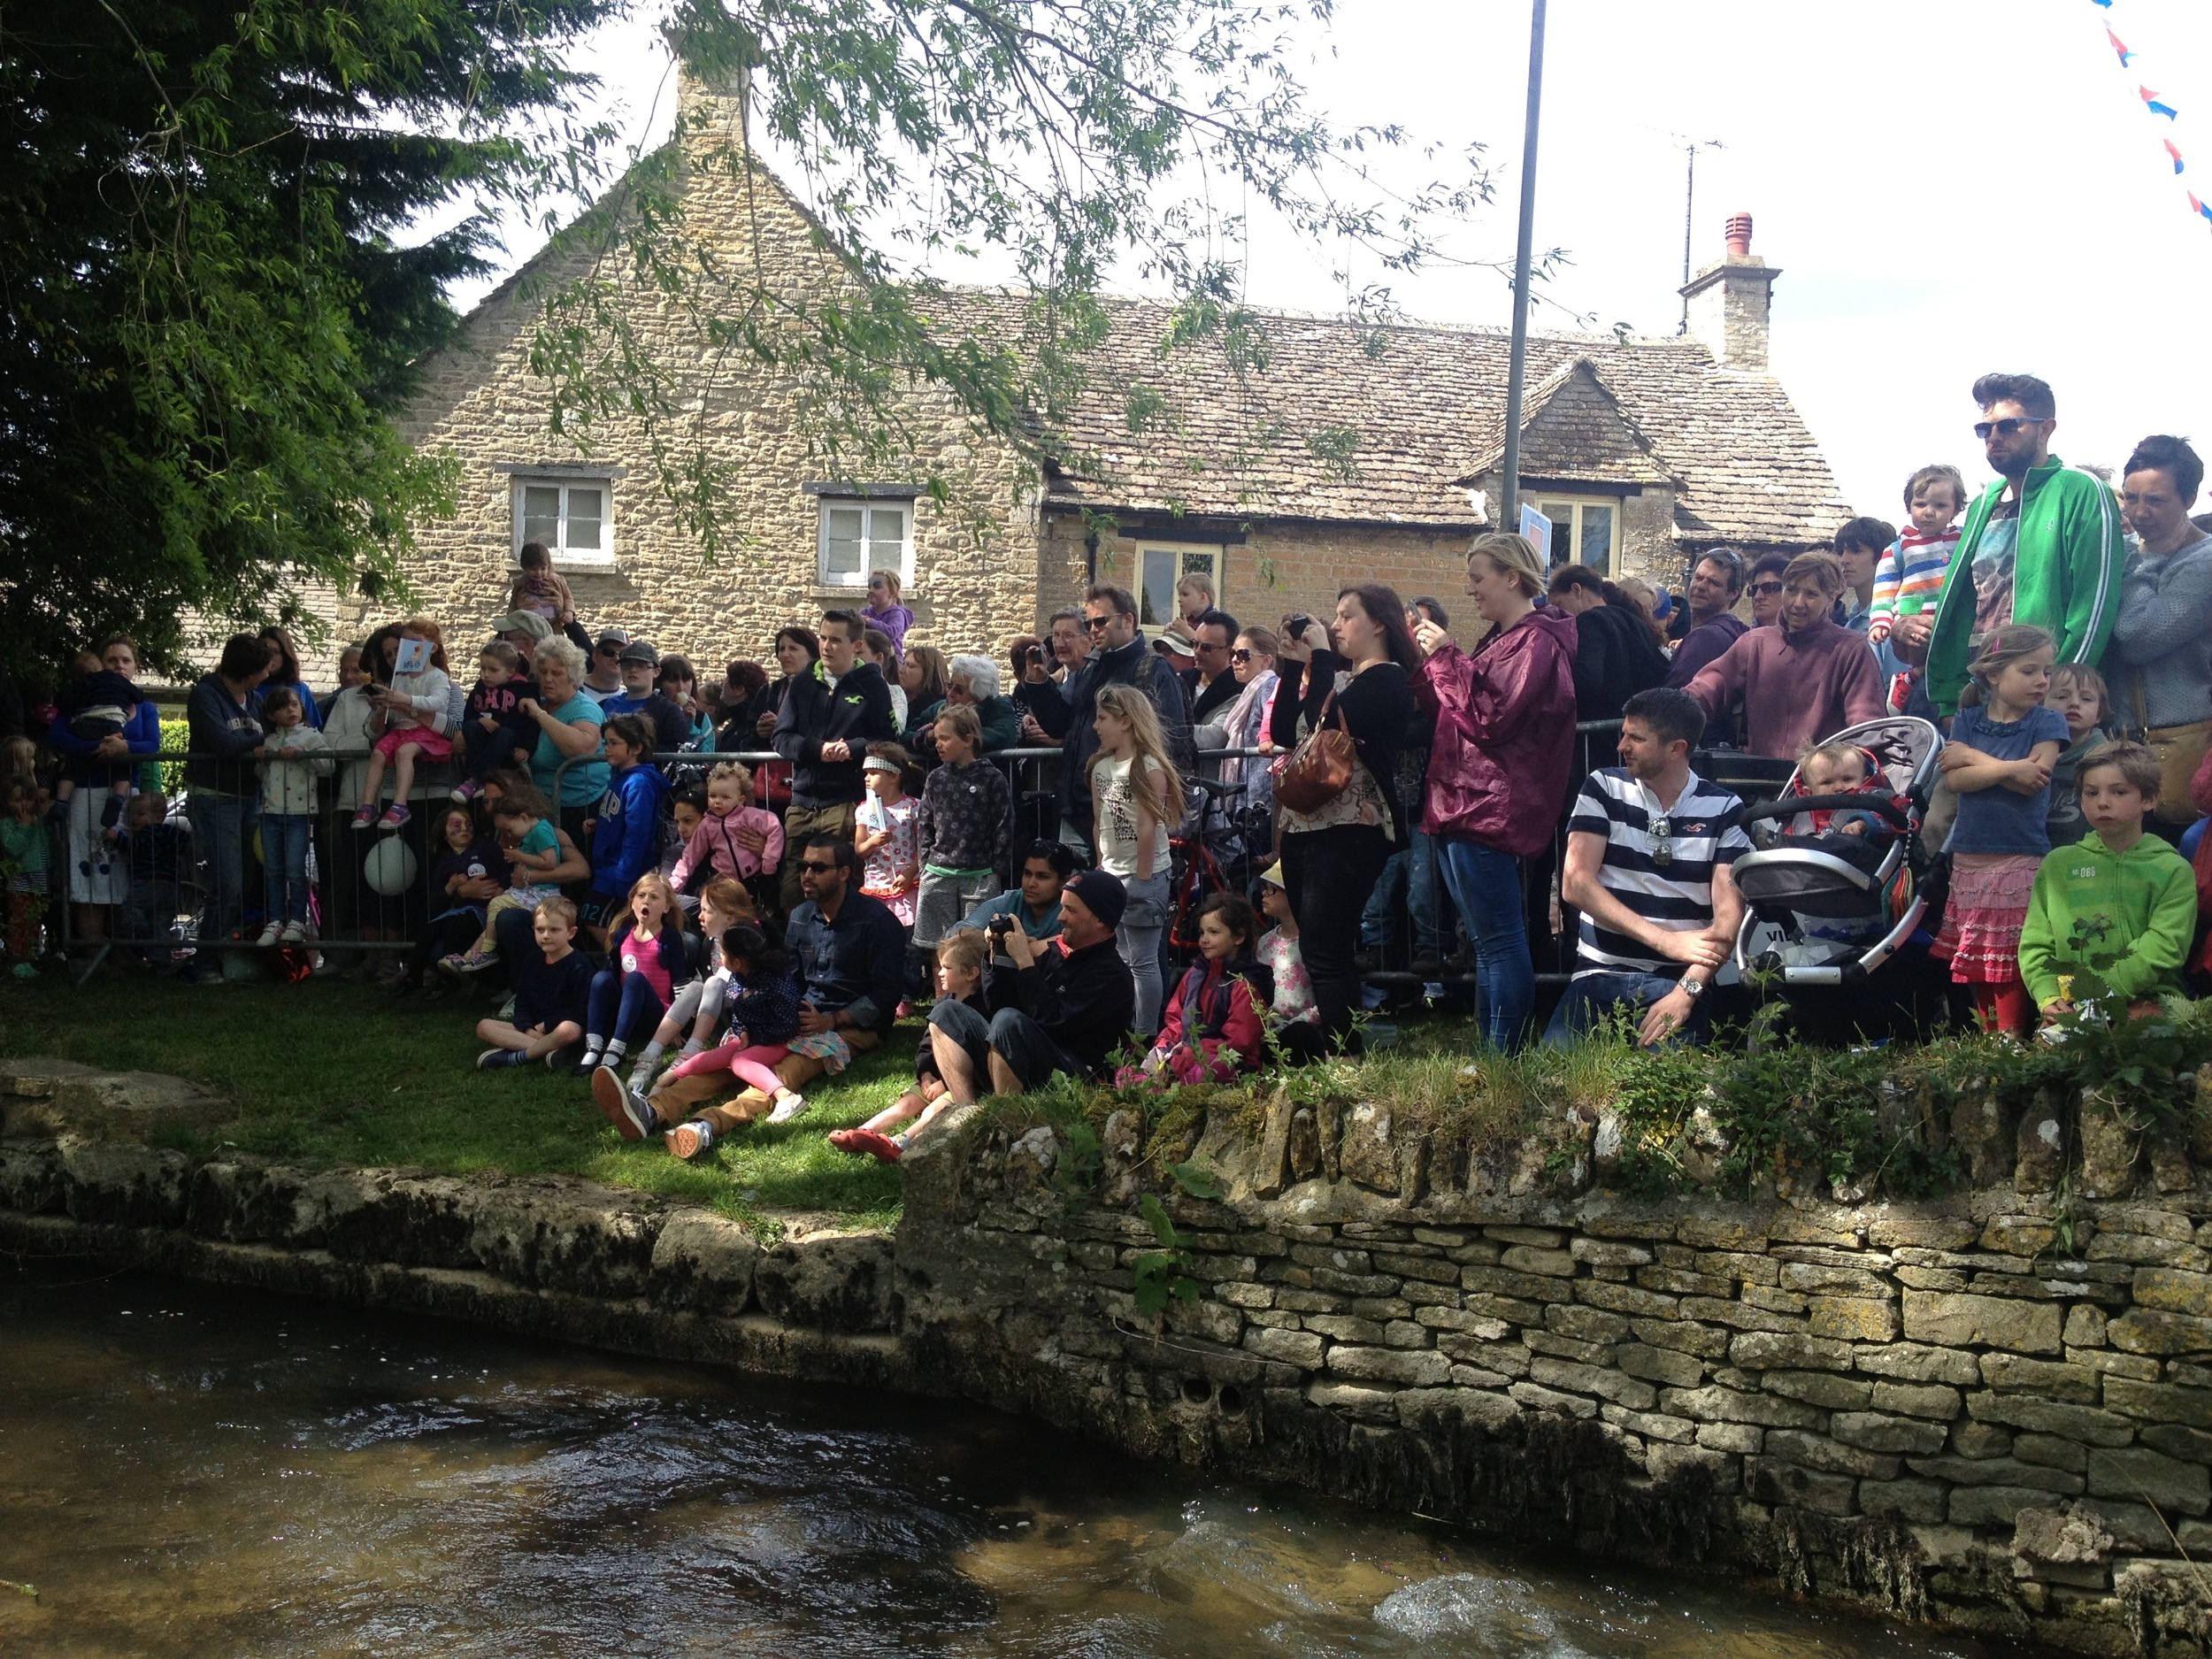 South-Cerney-Street-Fair-Duck-Race-Crowd-Scene